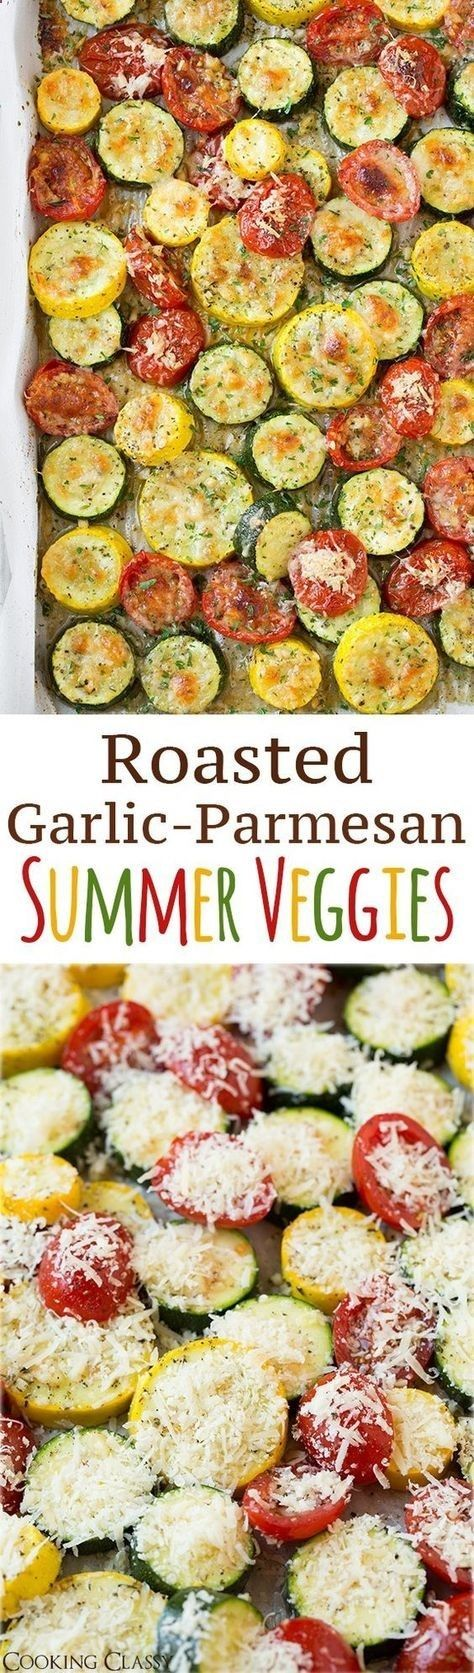 Eat Stop Eat To Loss Weight - Eat Stop Eat To Loss Weight - Eat Stop Eat To Loss Weight - Eat Stop Eat To Loss Weight - Roasted Garlic-Parmesan Zucchini, Squash and Tomatoes - this is the PERFECT use for all those fresh summer veggies! I couldn't stop eating them! Delicious flavor and so easy to make. #weightlossmotivation - In Just One Day This Simple Strategy Frees You From Complicated Diet Rules - And Eliminates Rebound Weight Gain In Just One Day This Simple Strategy Frees You From...